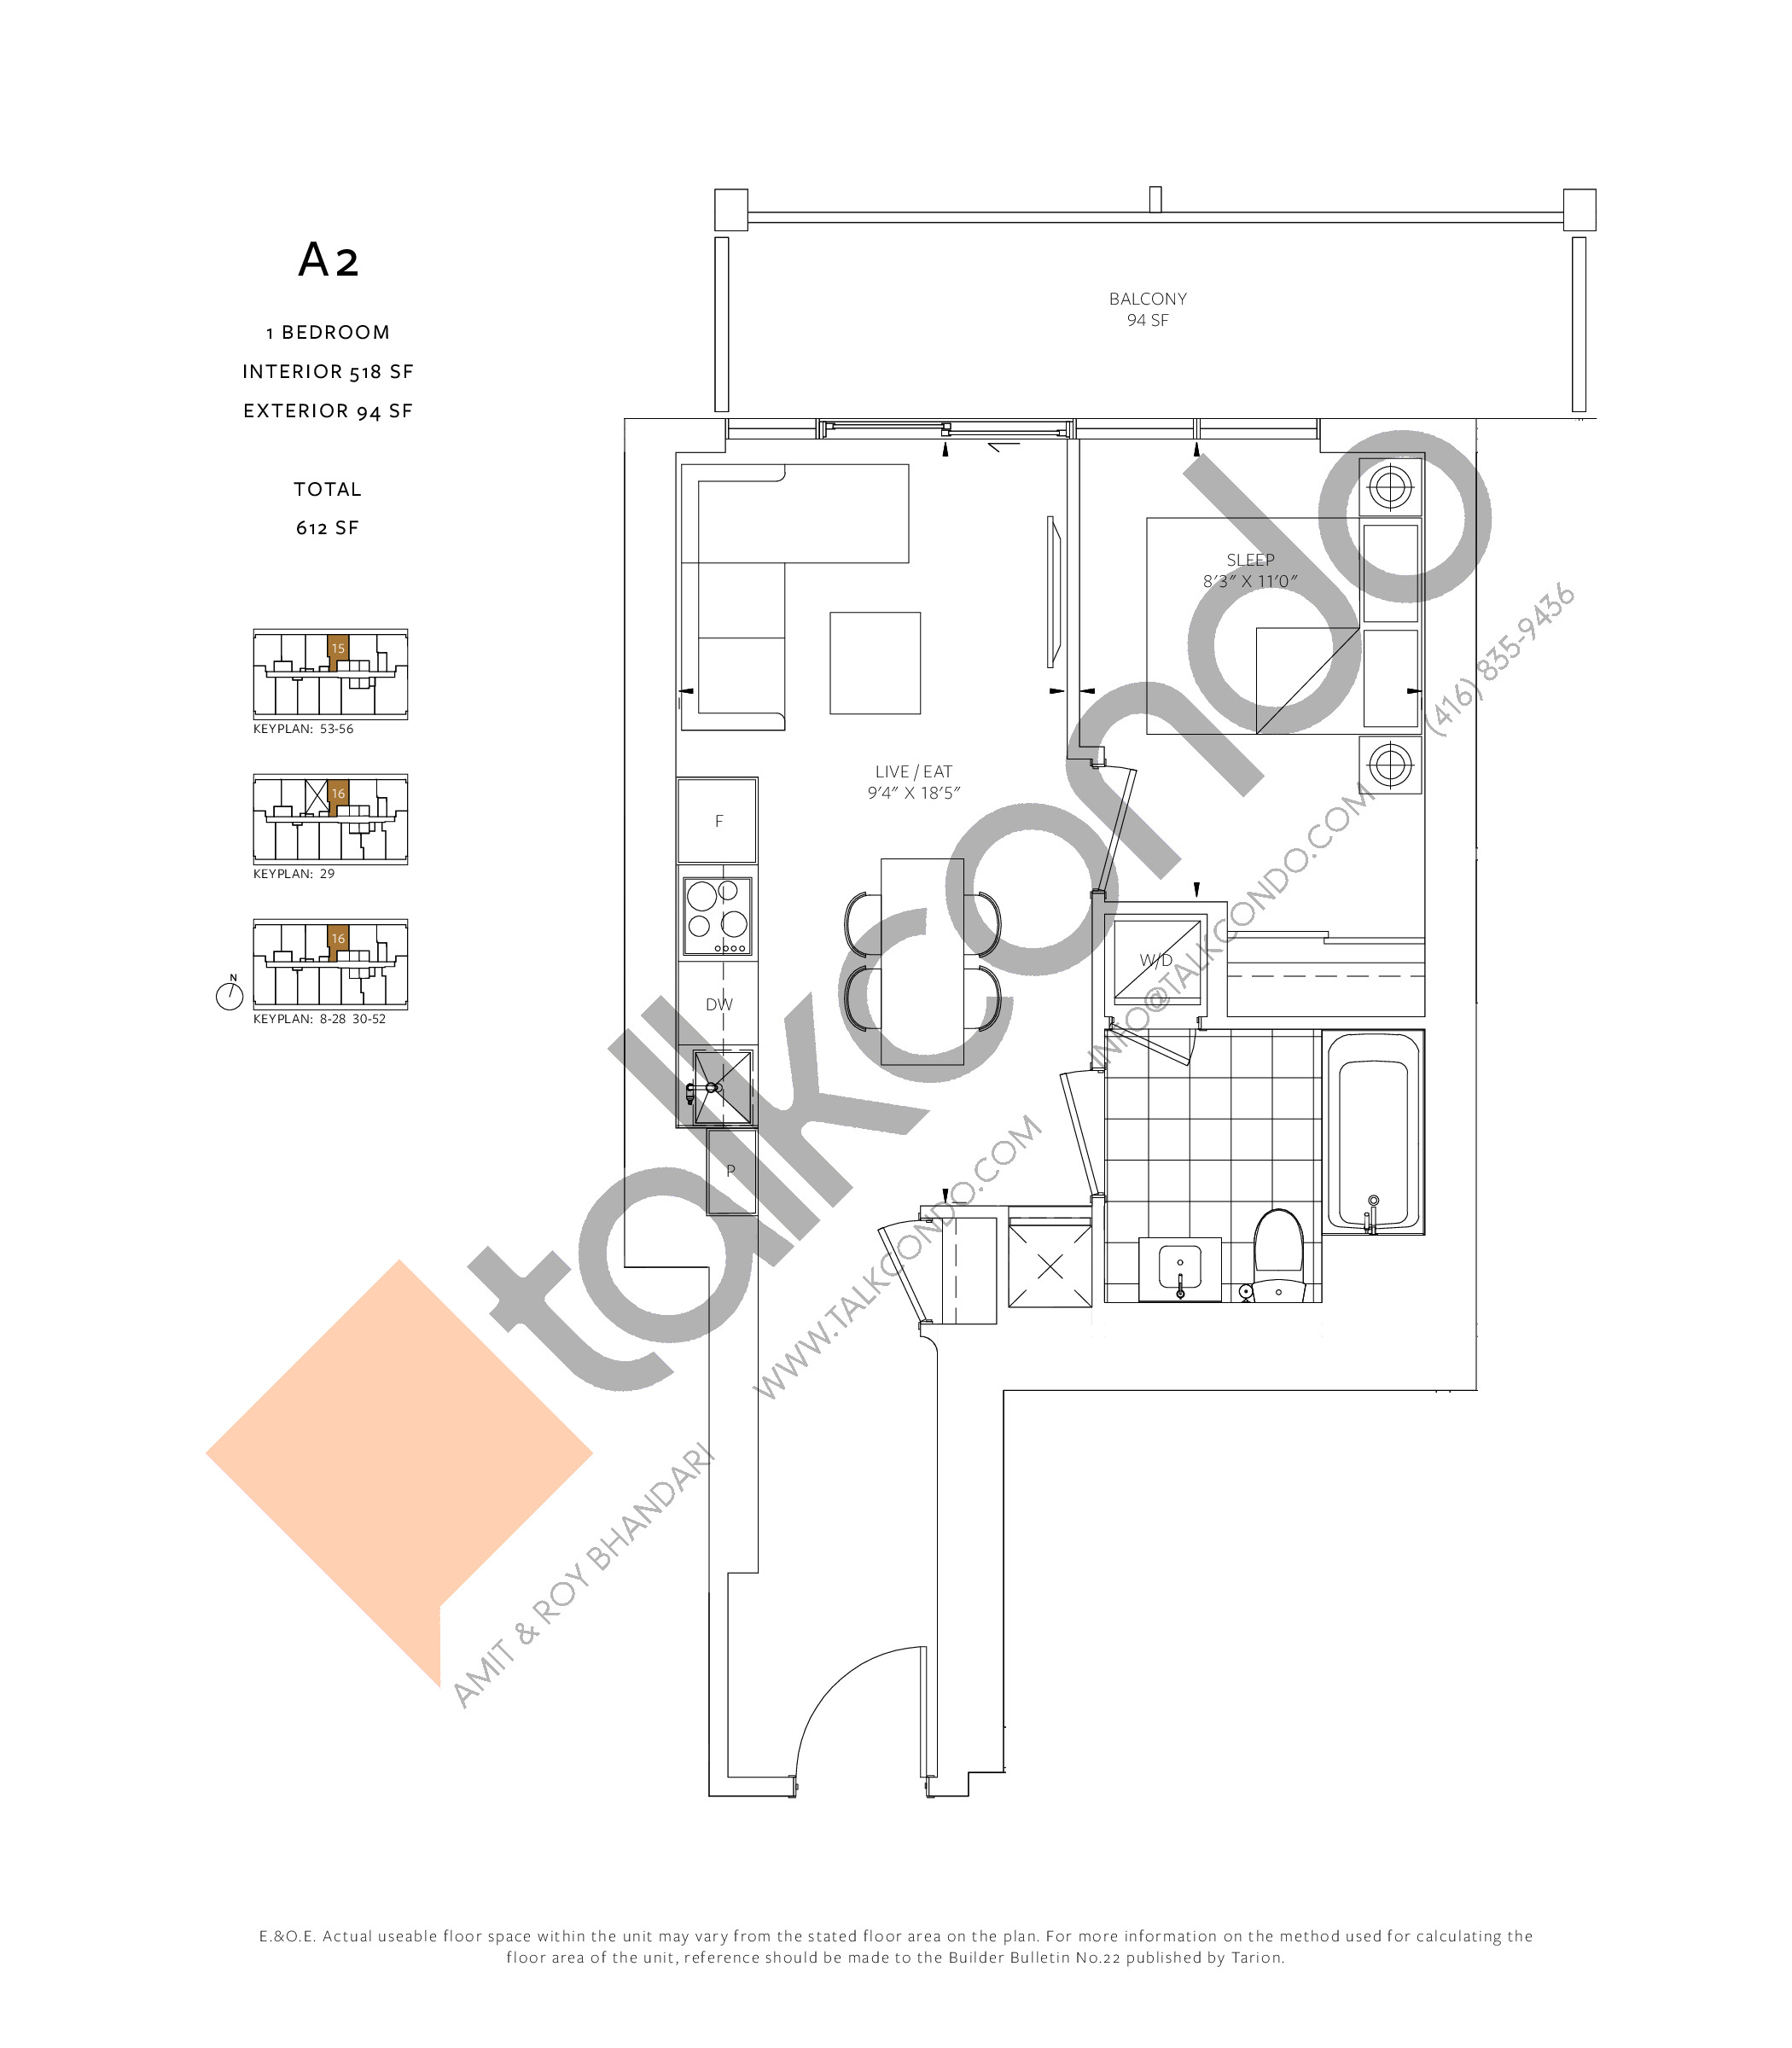 A2 Floor Plan at 88 Queen Condos - Phase 2 - 518 sq.ft